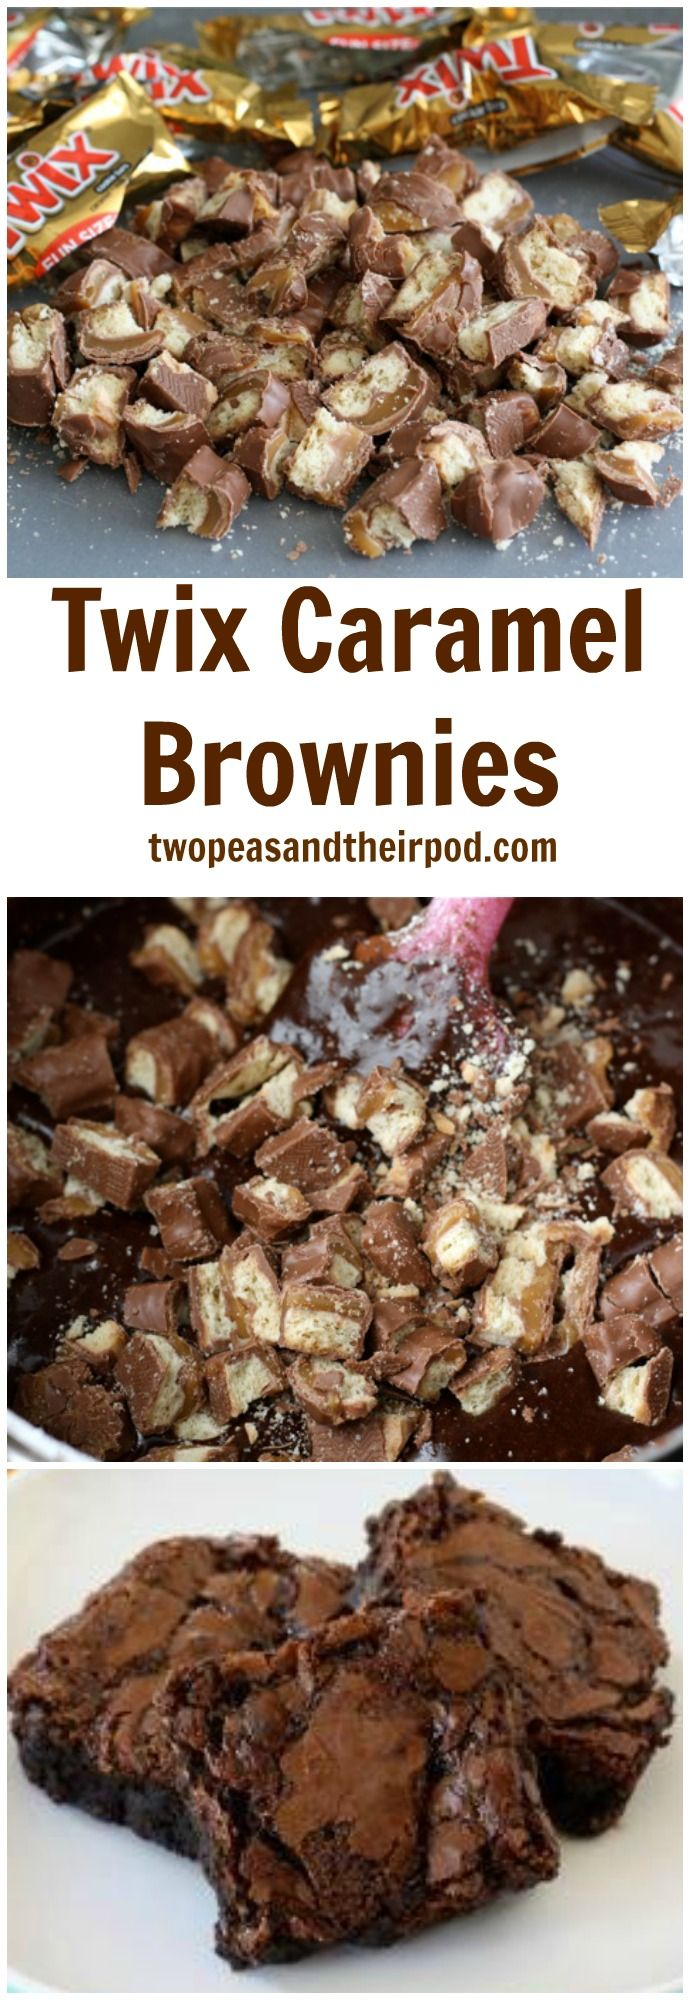 Twix Caramel Brownies Recipe on twopeasandtheirpod.com These brownies are easy to make and SO amazing! You will love the Twix and caramel addition!